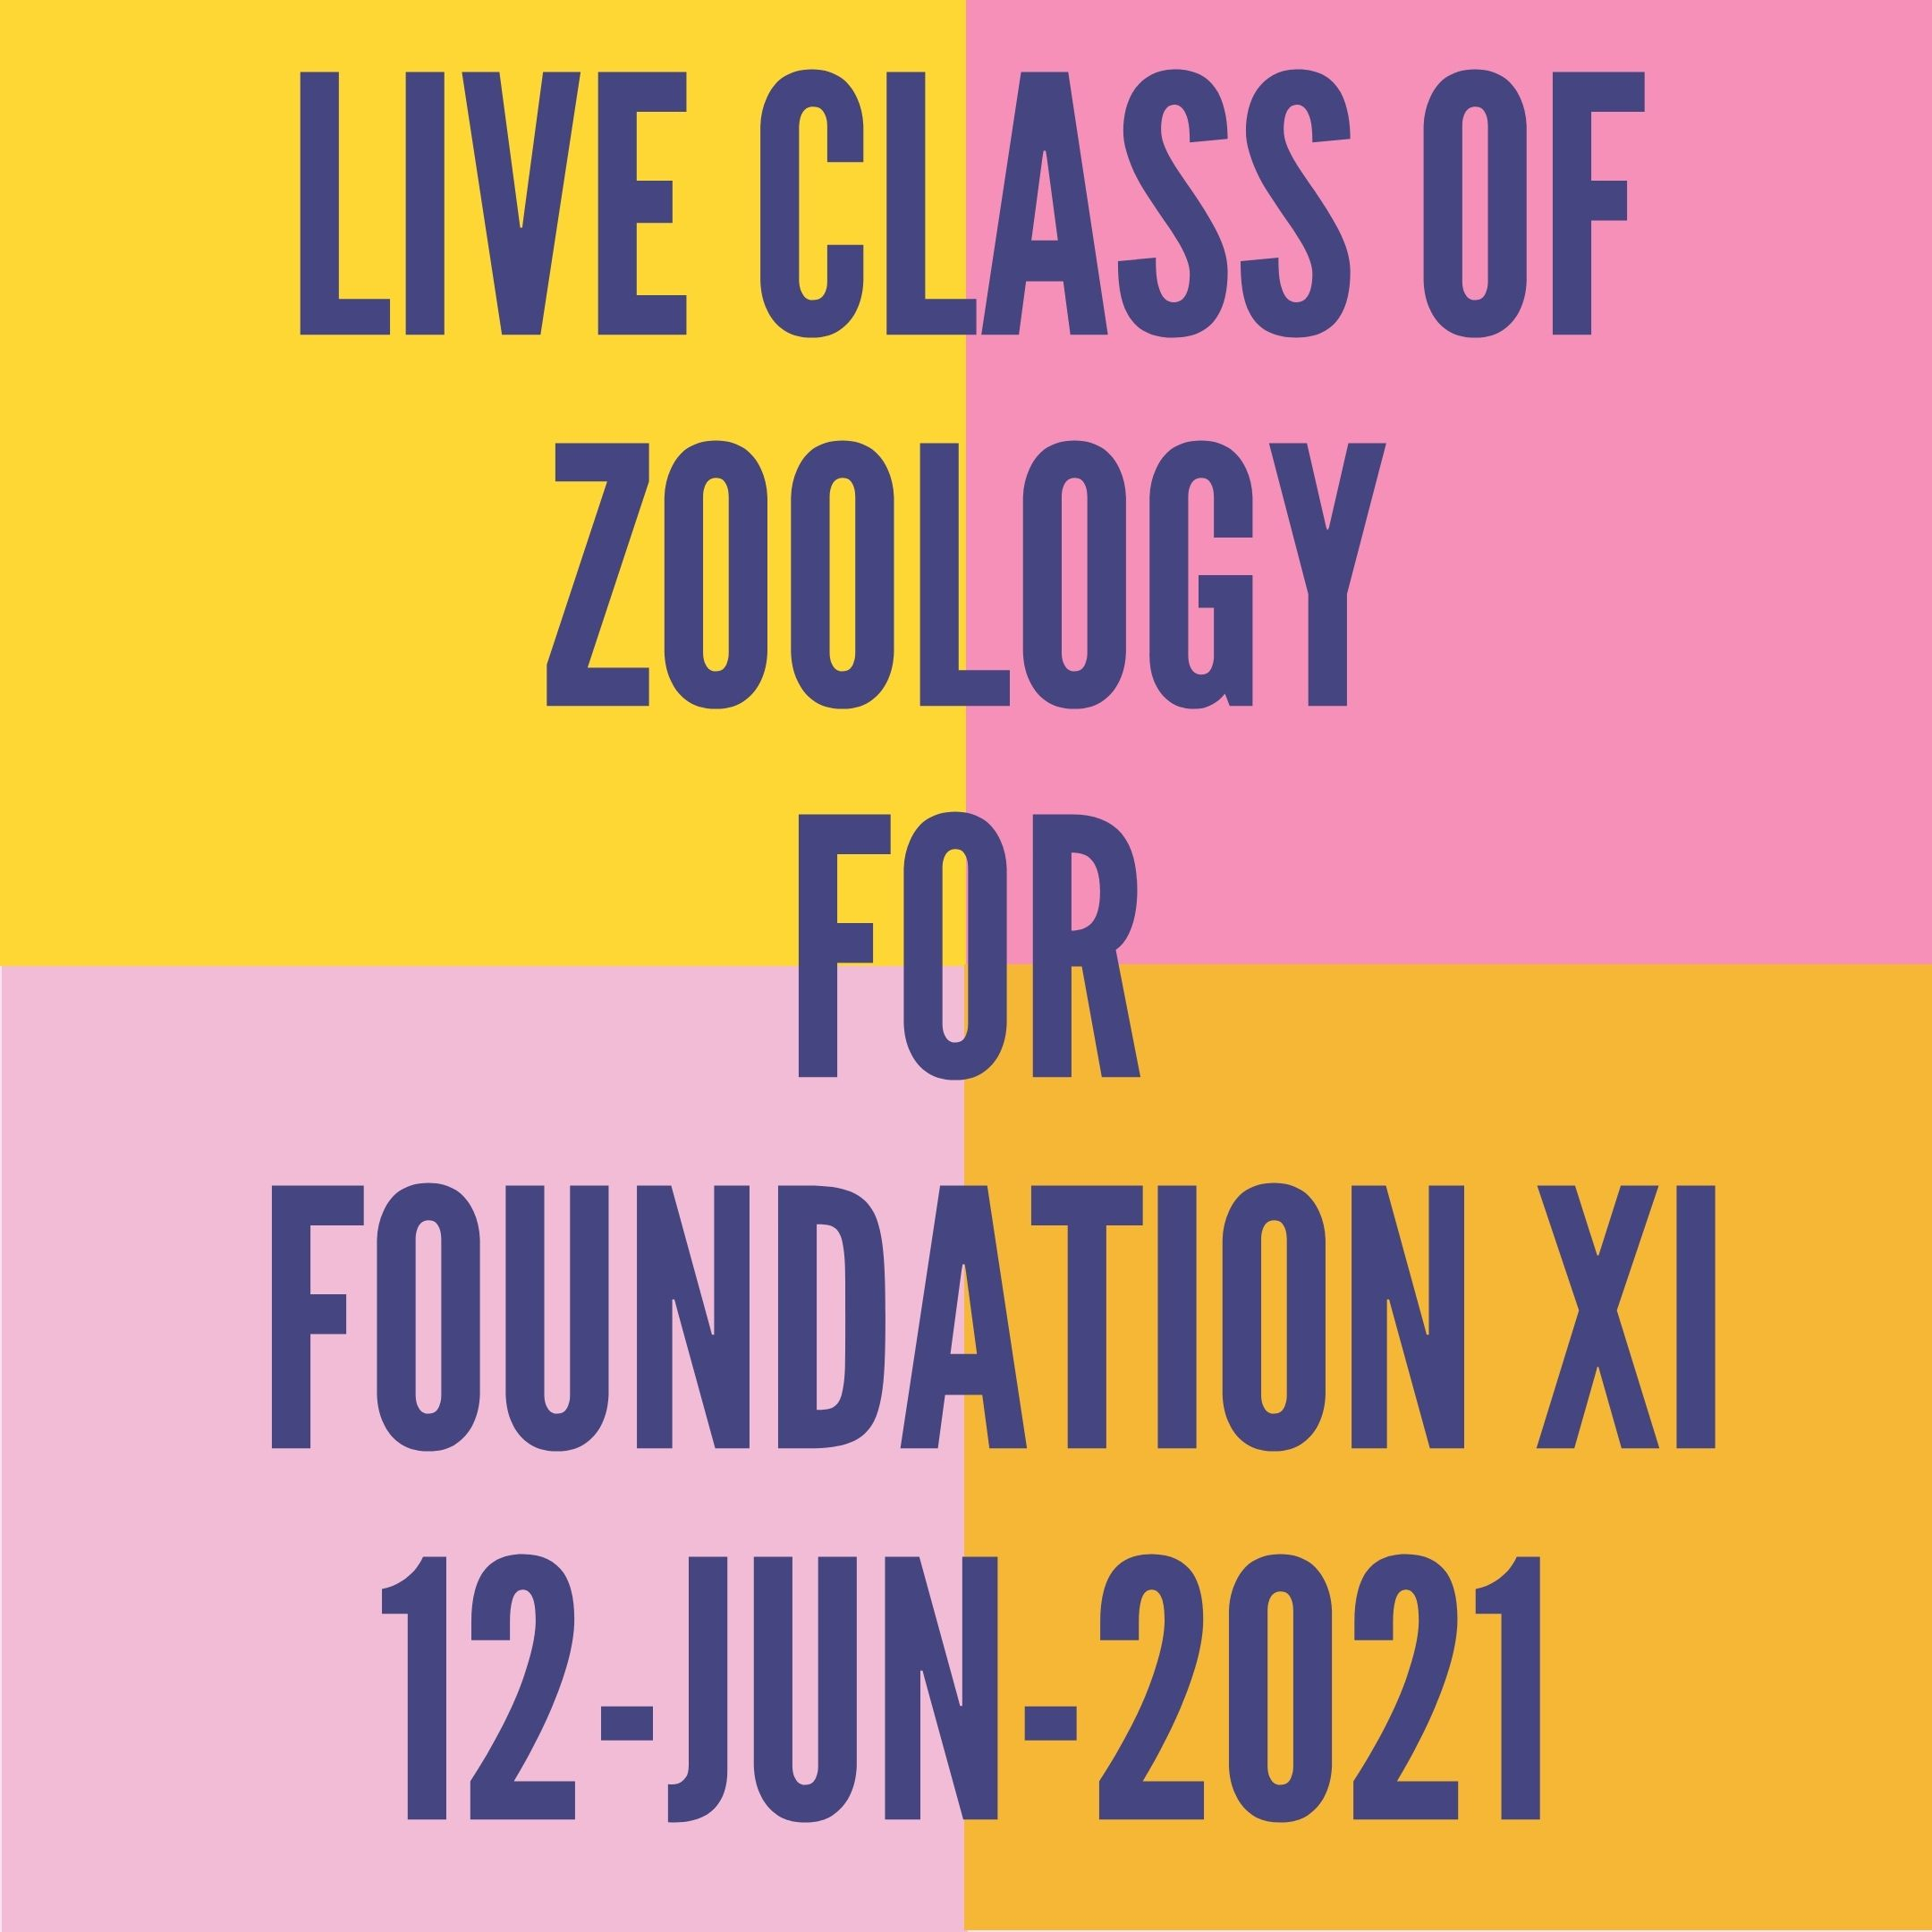 LIVE CLASS OF ZOOLOGY FOR FOUNDATION XI (12-JUN-2021) DIGESTIVE SYSTEM